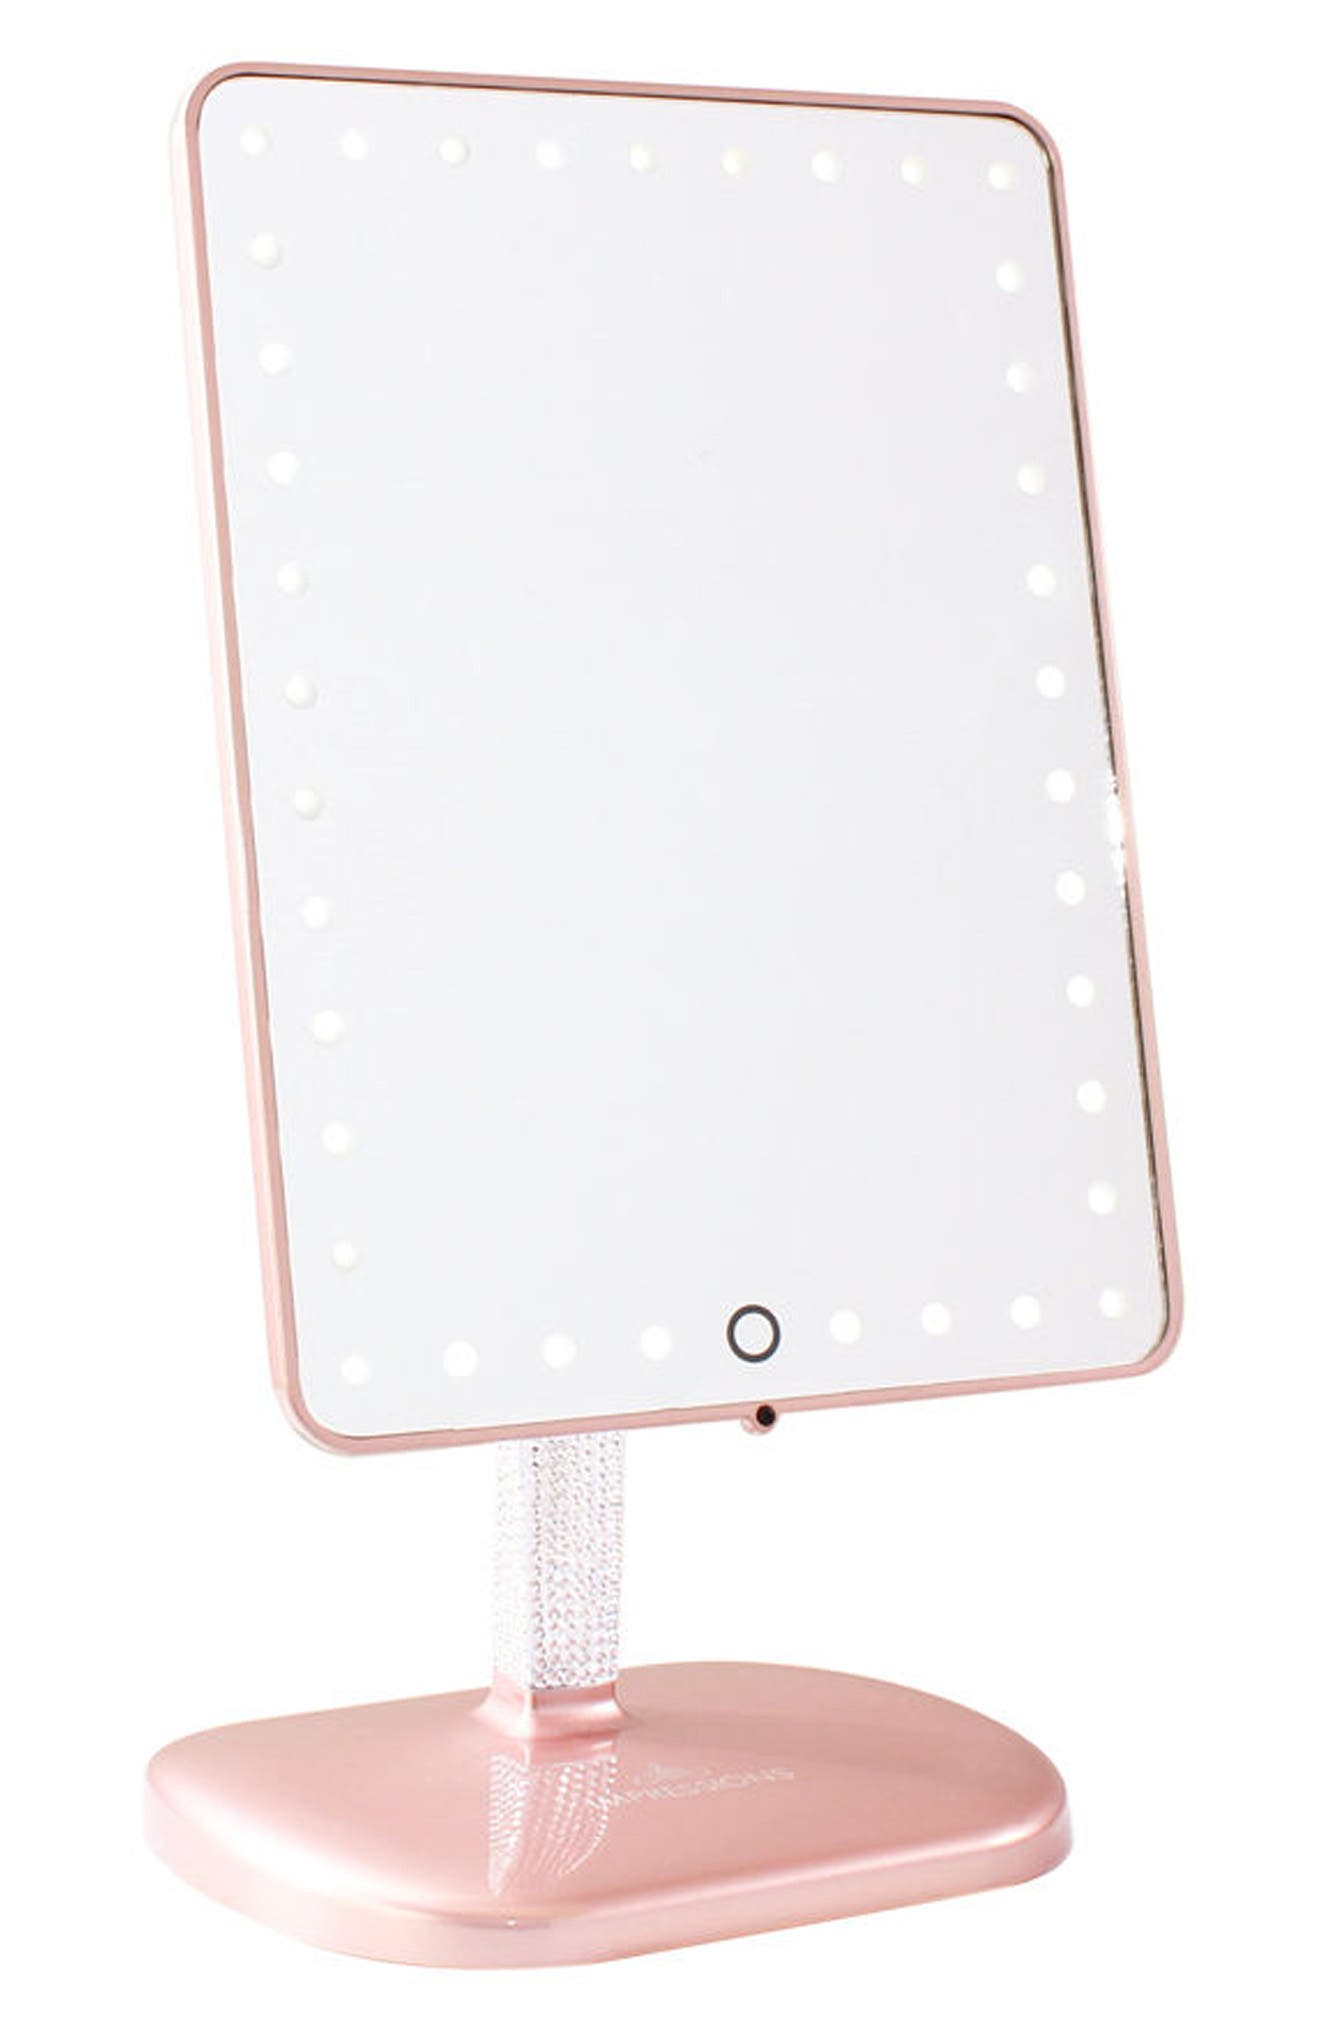 Main Image - Impressions Vanity Co. Bling Touch Pro LED Makeup Mirror with Bluetooth® Audio & Speakerphone